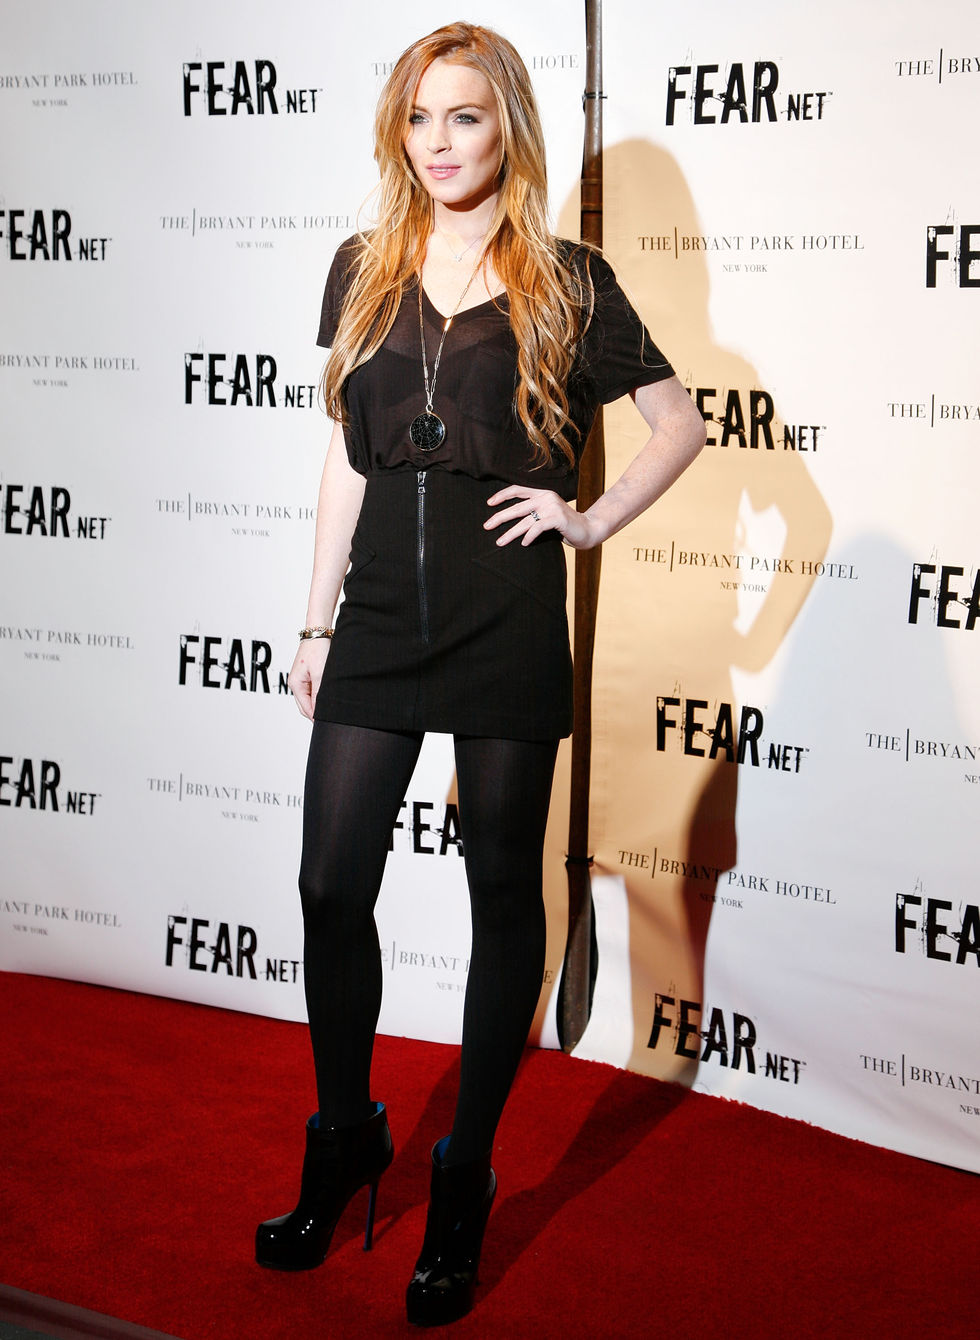 lindsay-lohan-fearnets-2nd-anniversary-party-in-new-york-city-01